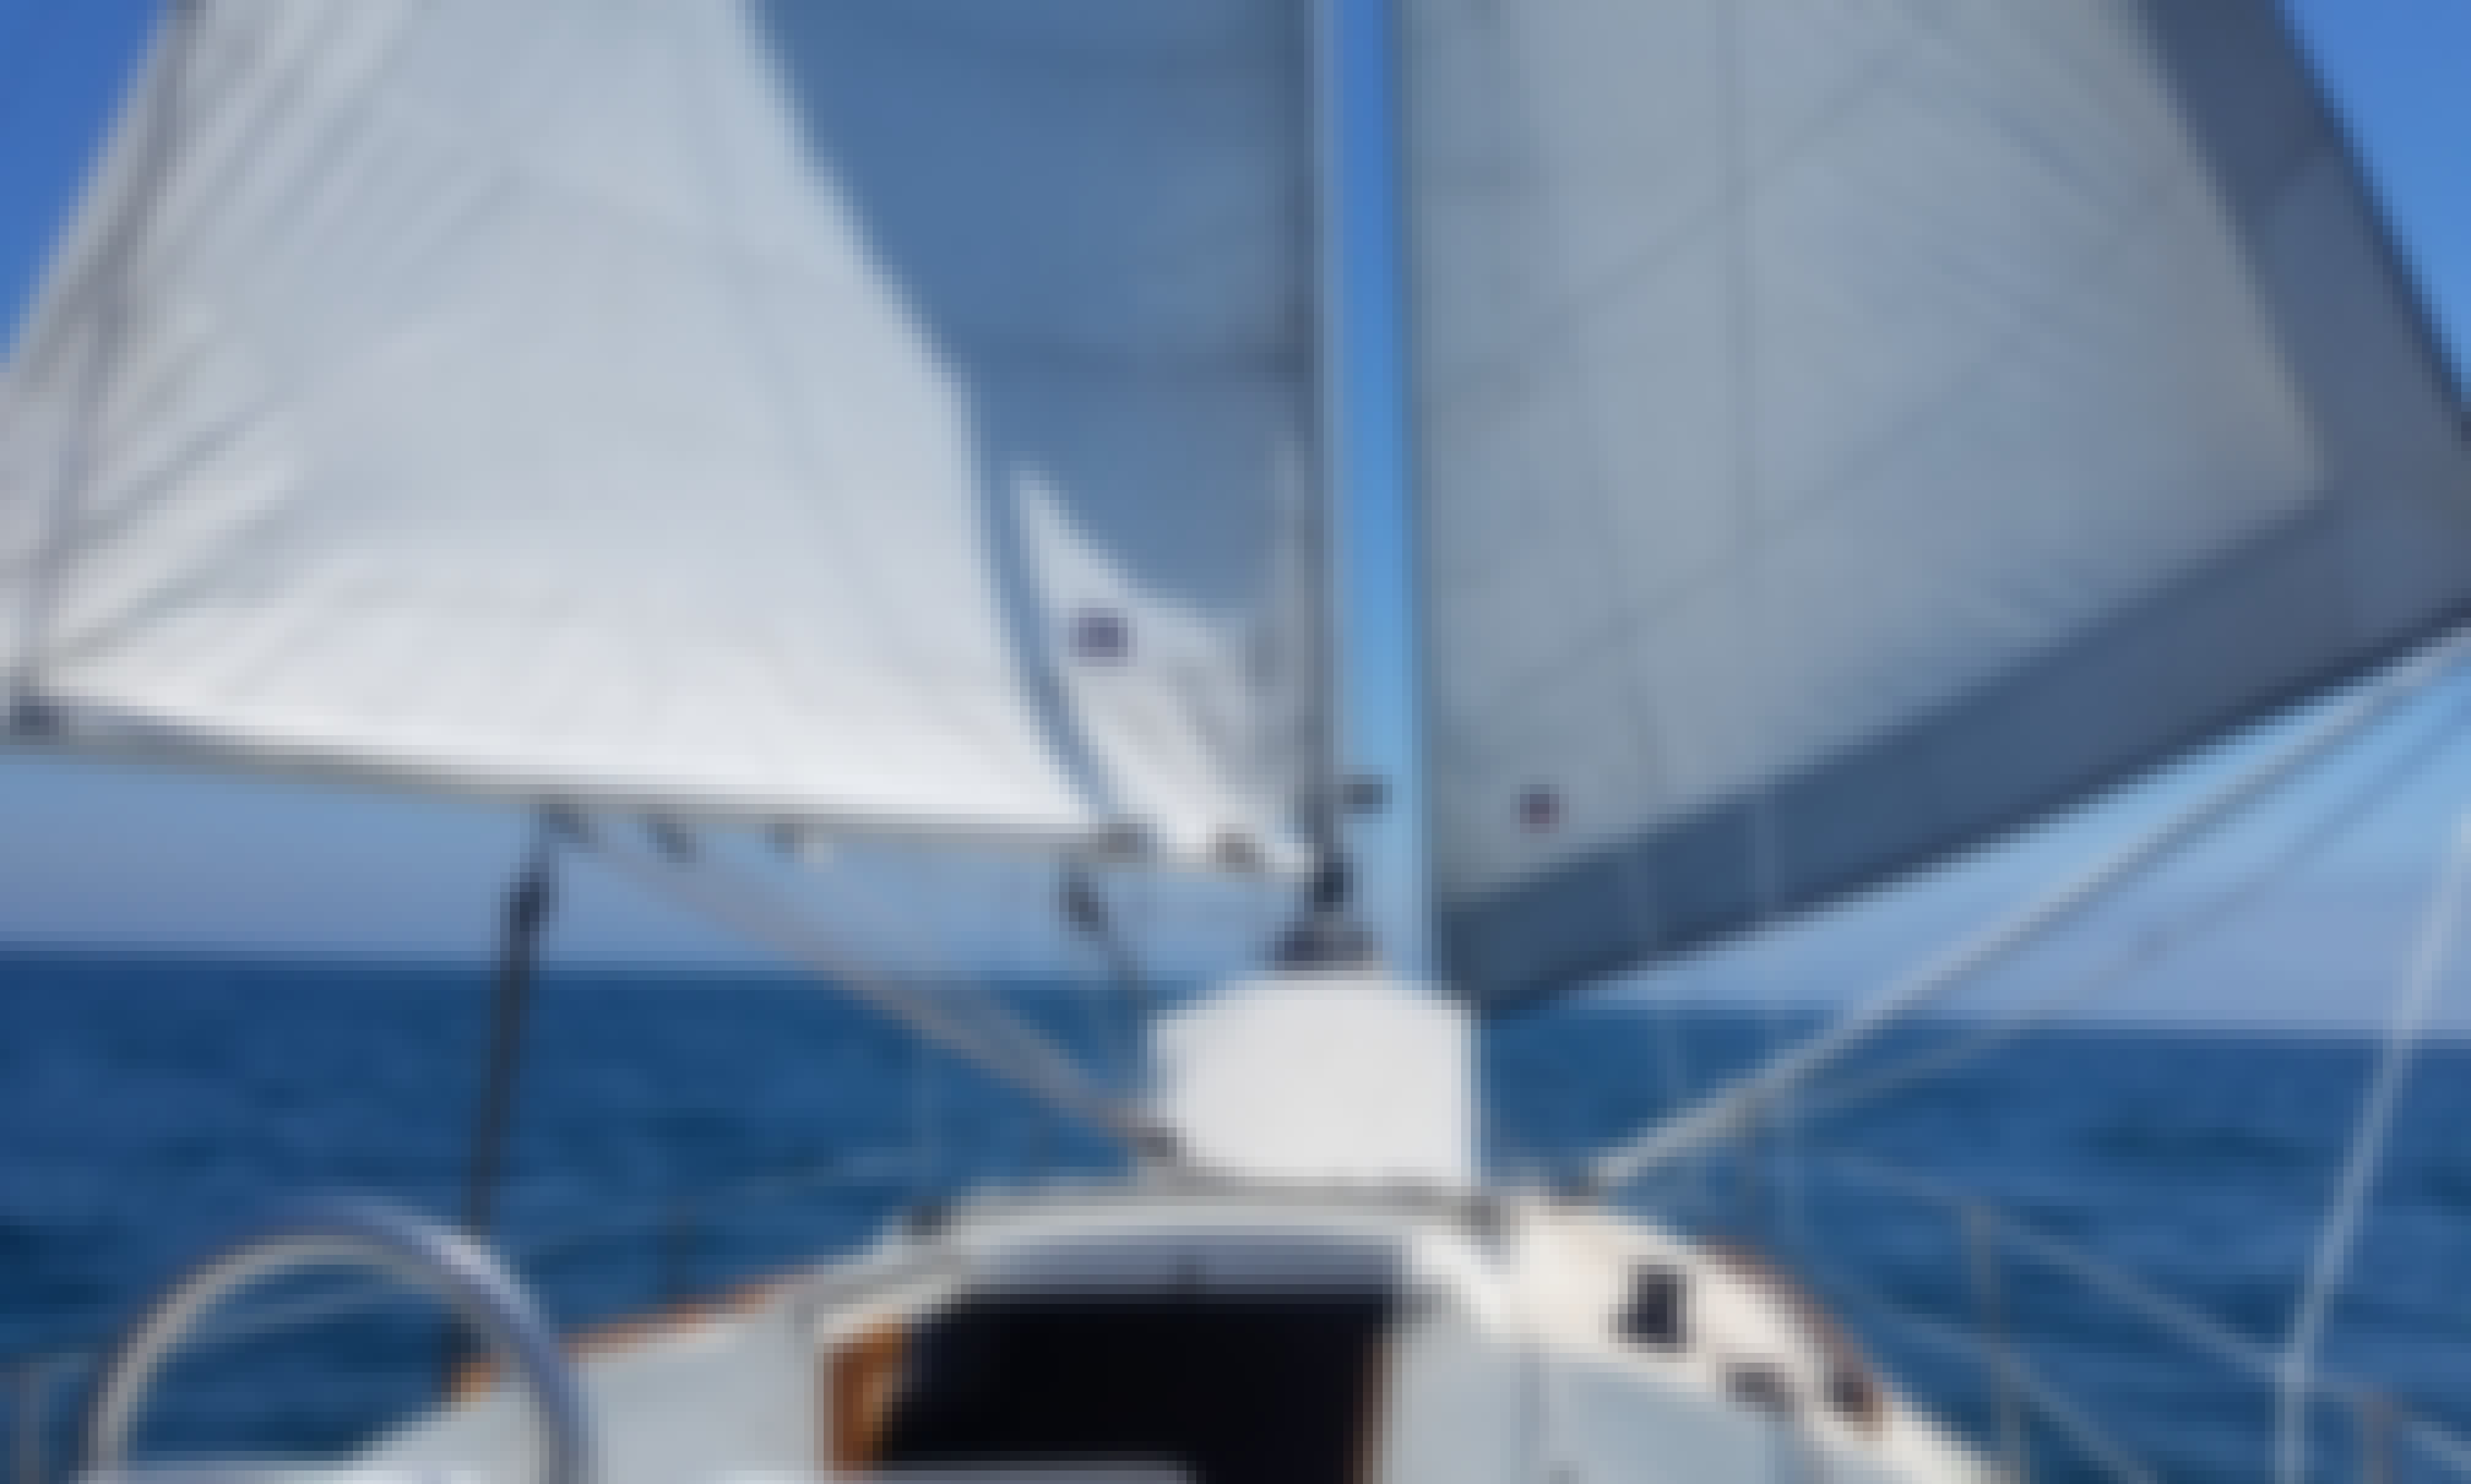 Private Sailing Charter with Captain for up to 6 people - 33' Newport Sailboat!